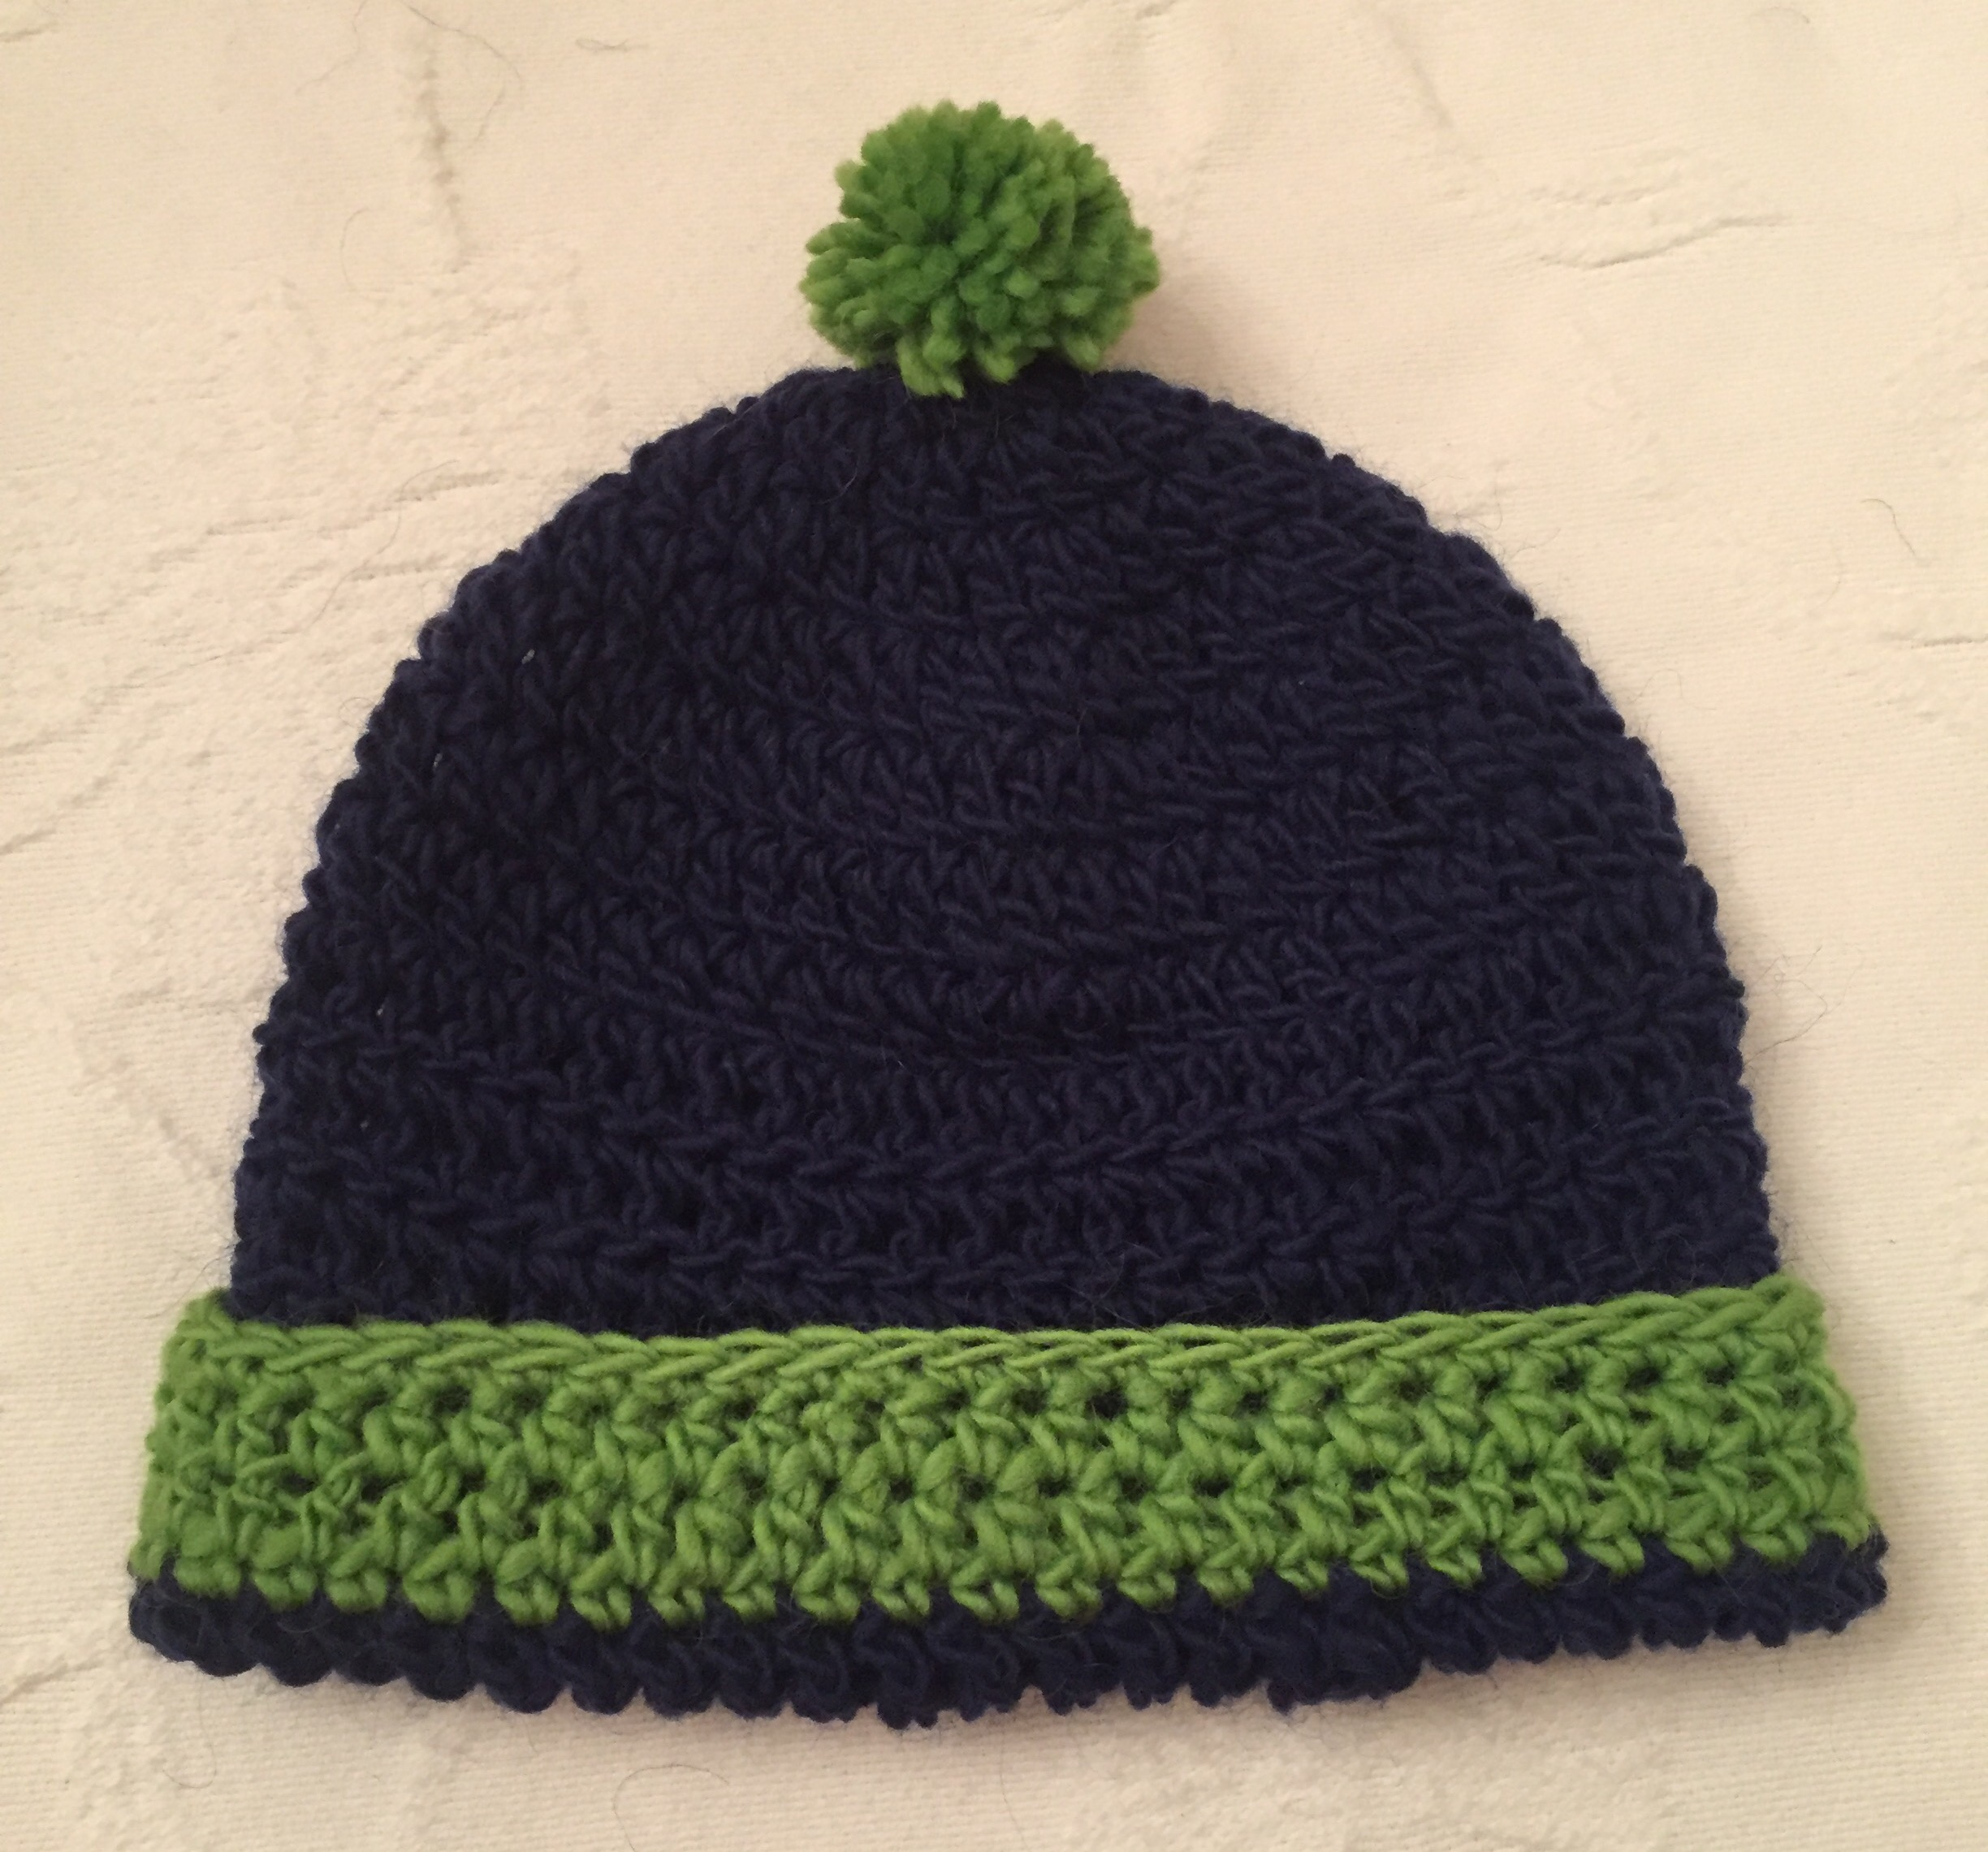 Seattle Seahawks Hat For 2 Year Old No Needle Knitting